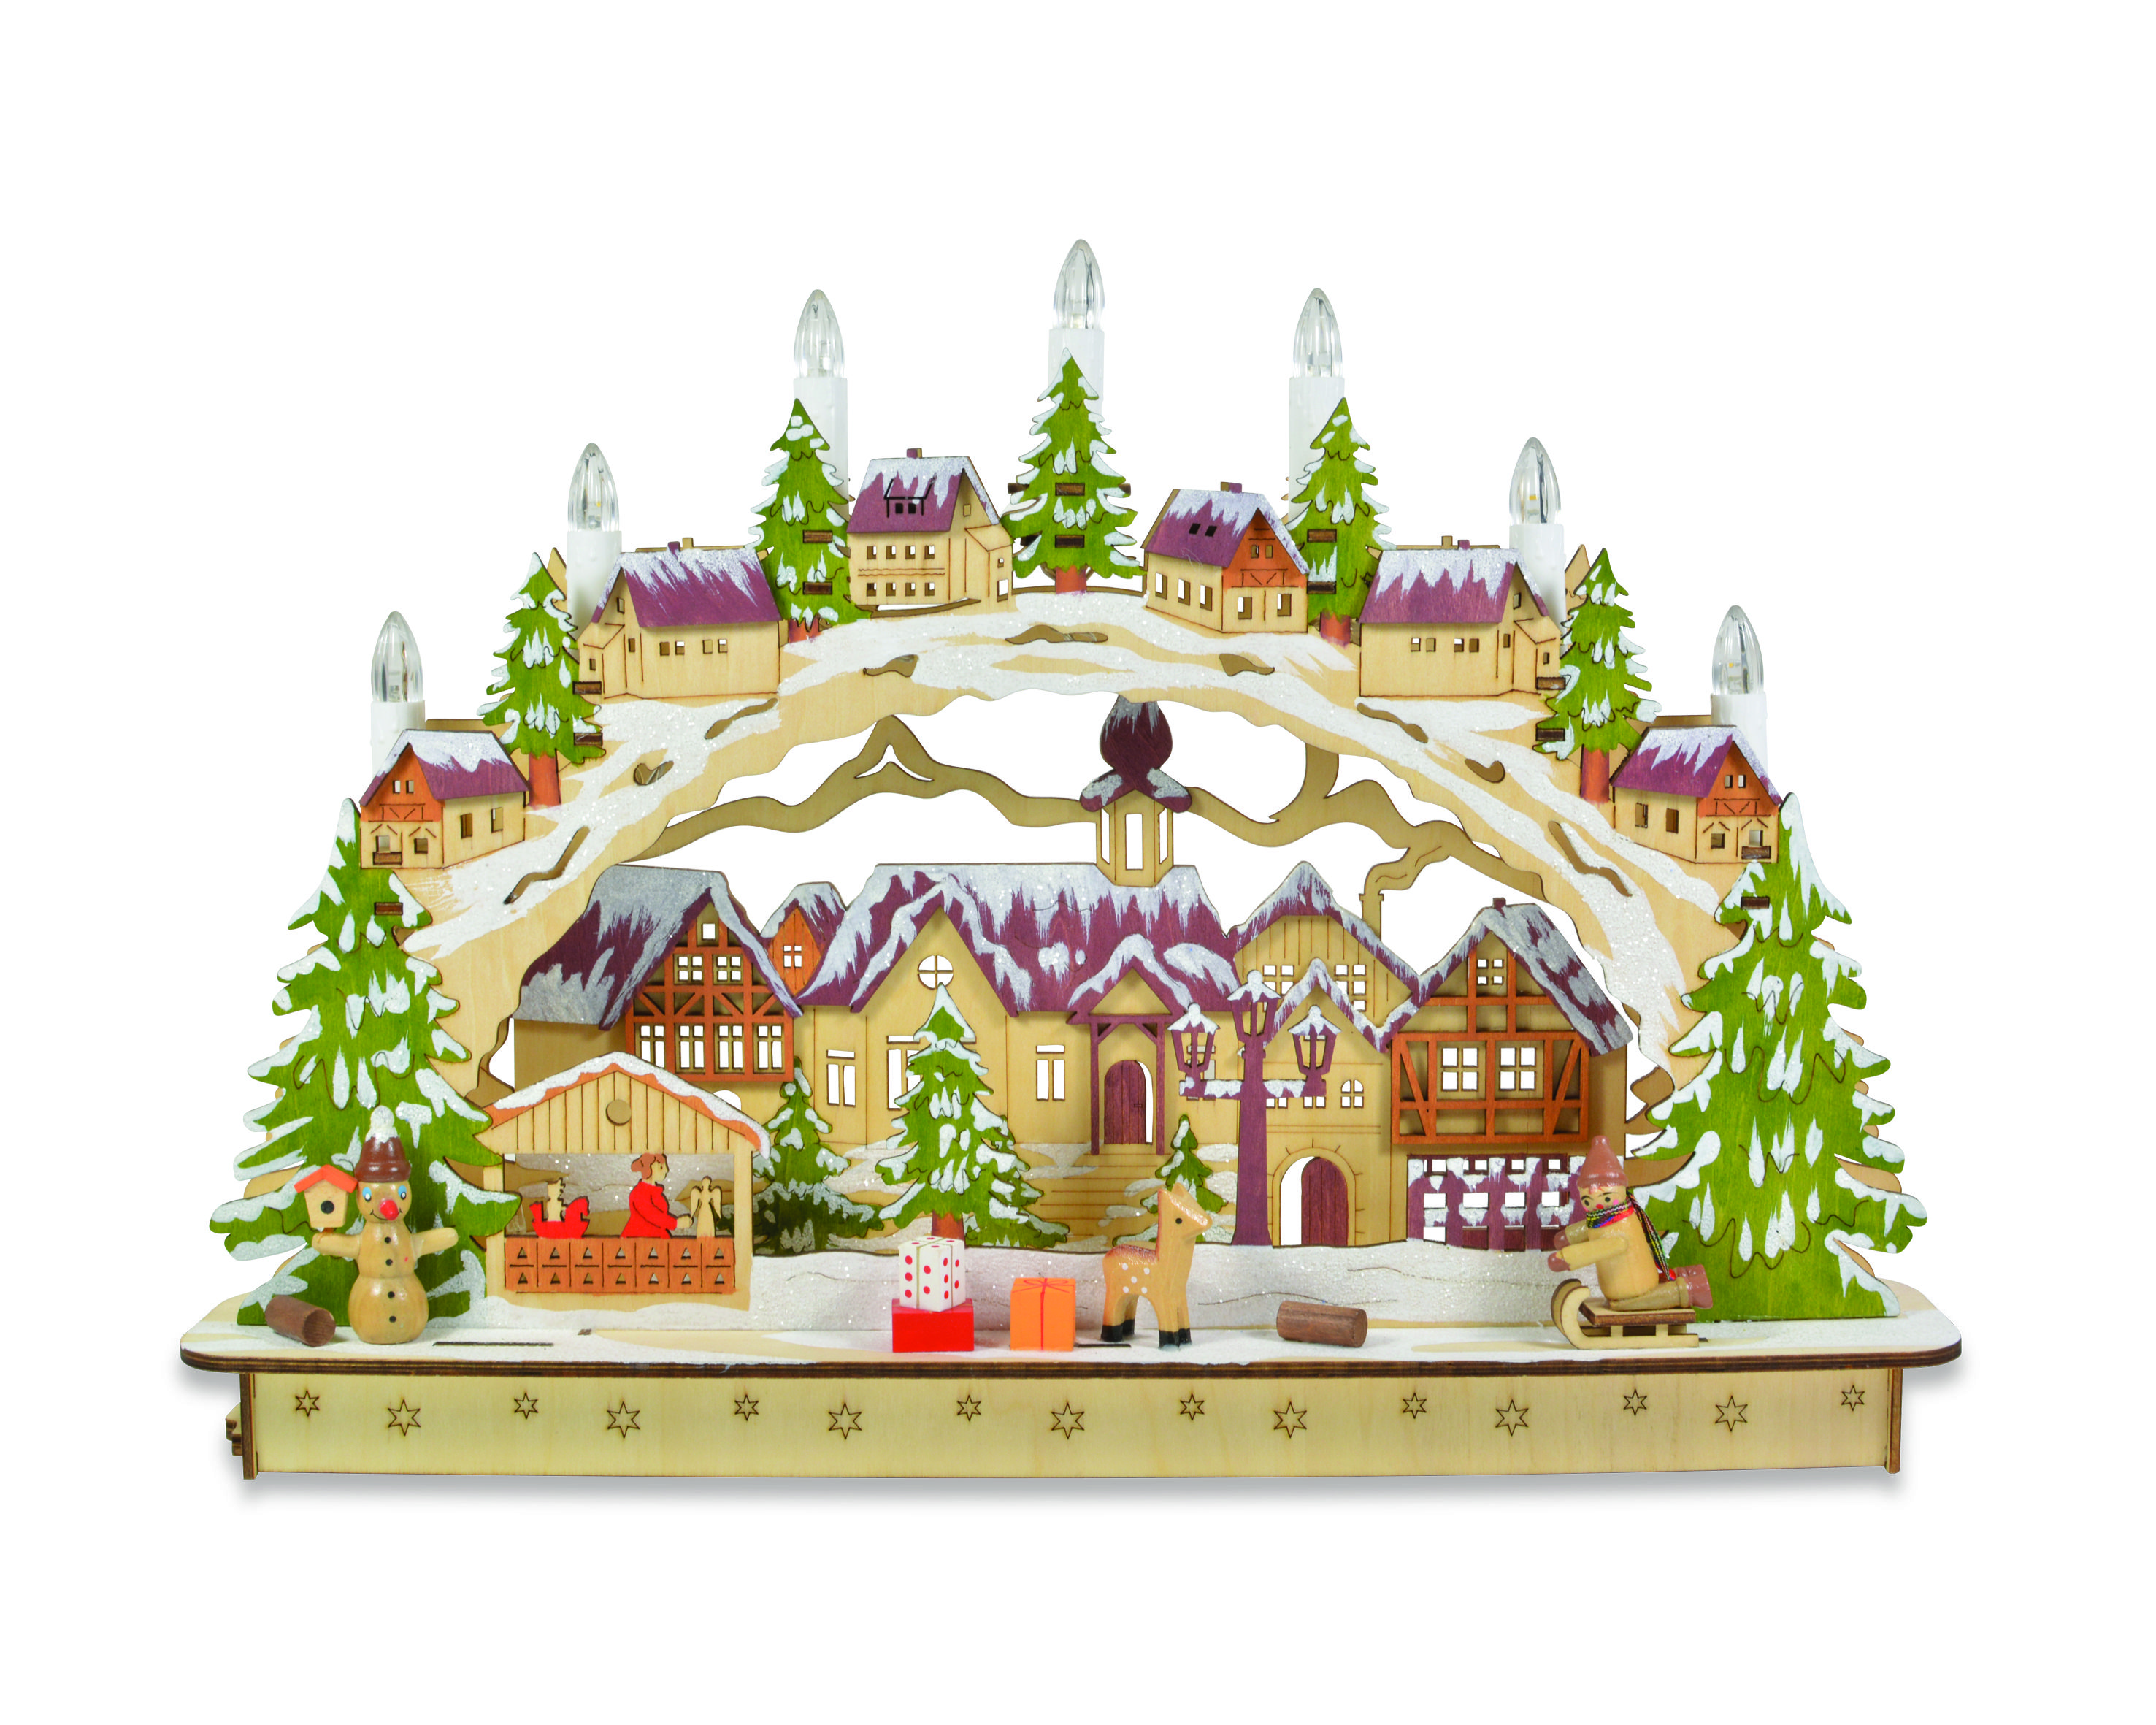 Candle arch with lovely village scene